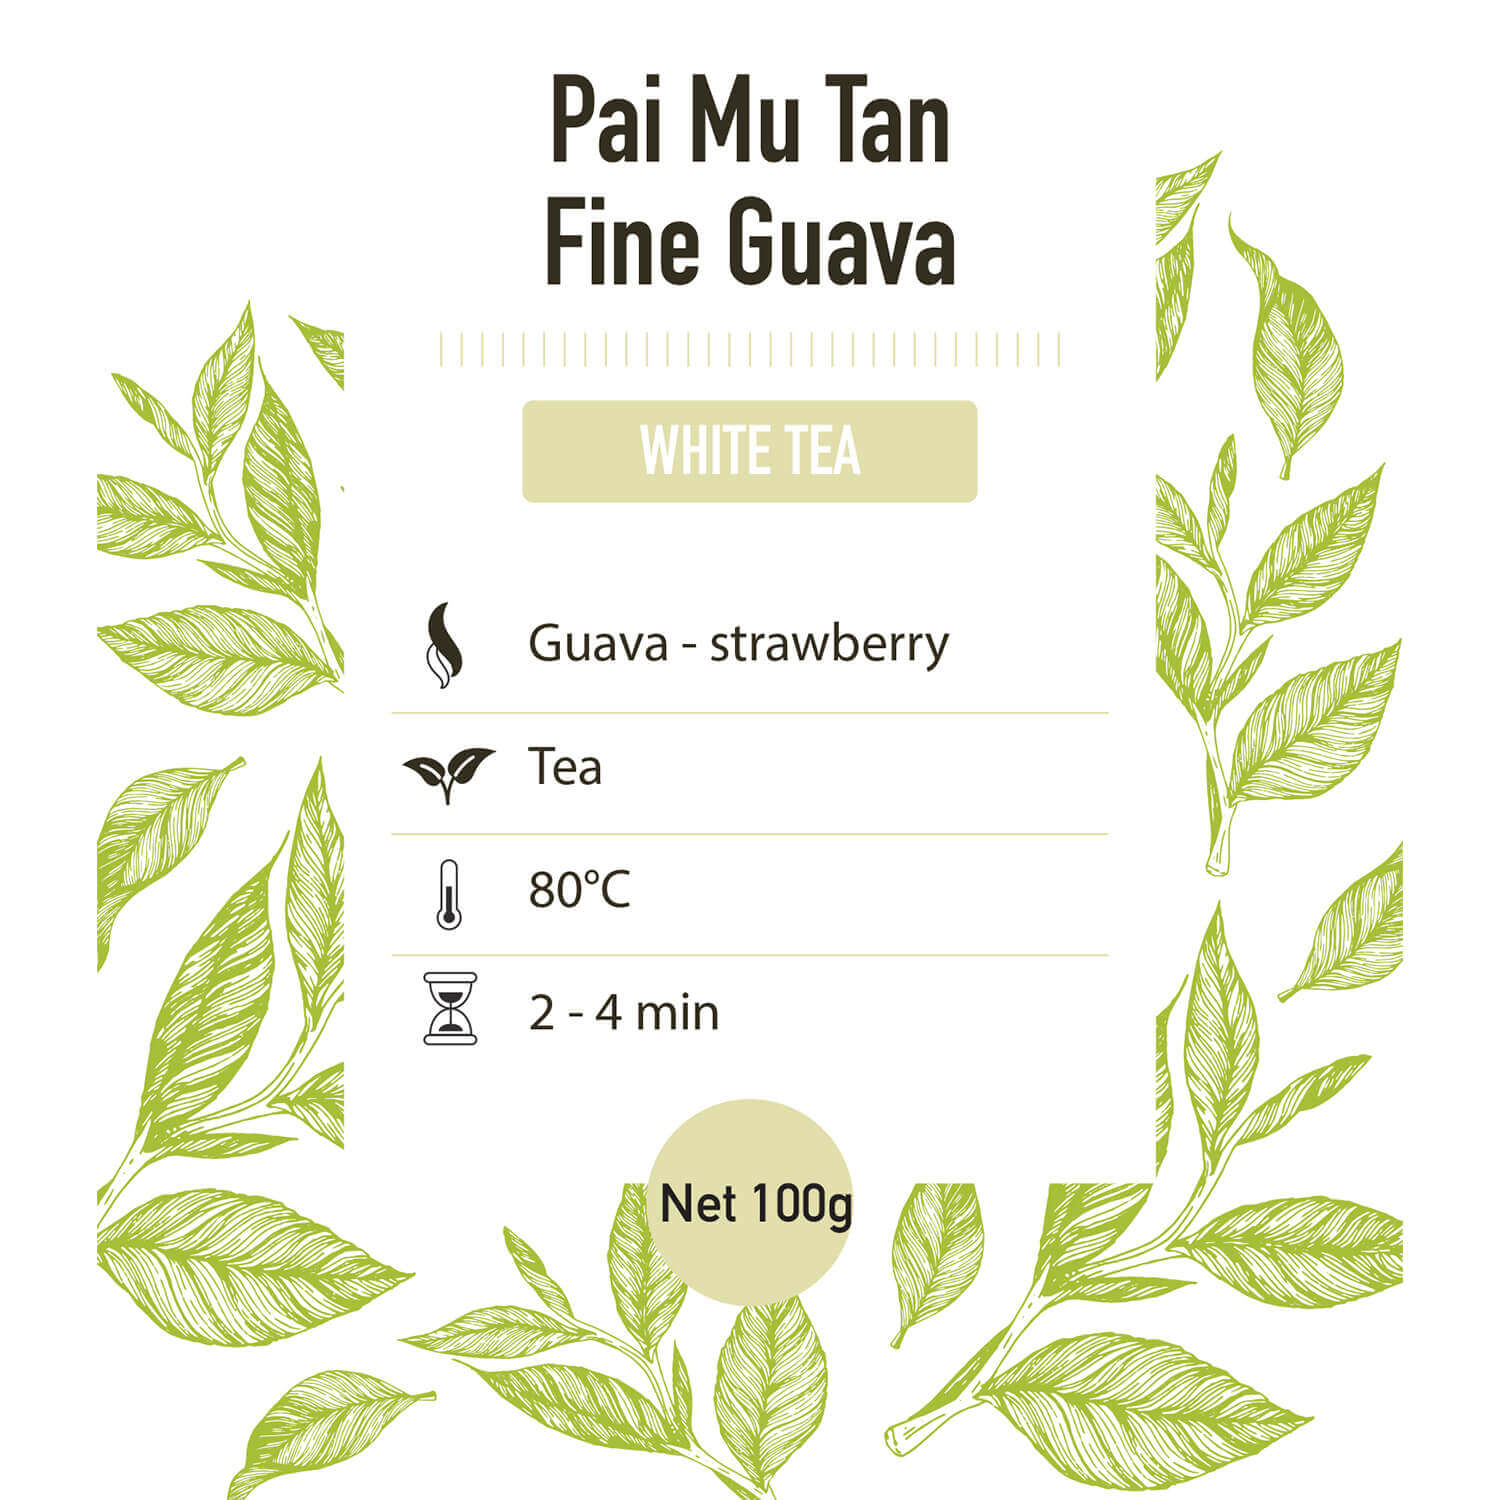 Witte thee – China Pai Mu Tan Fine guava – detail